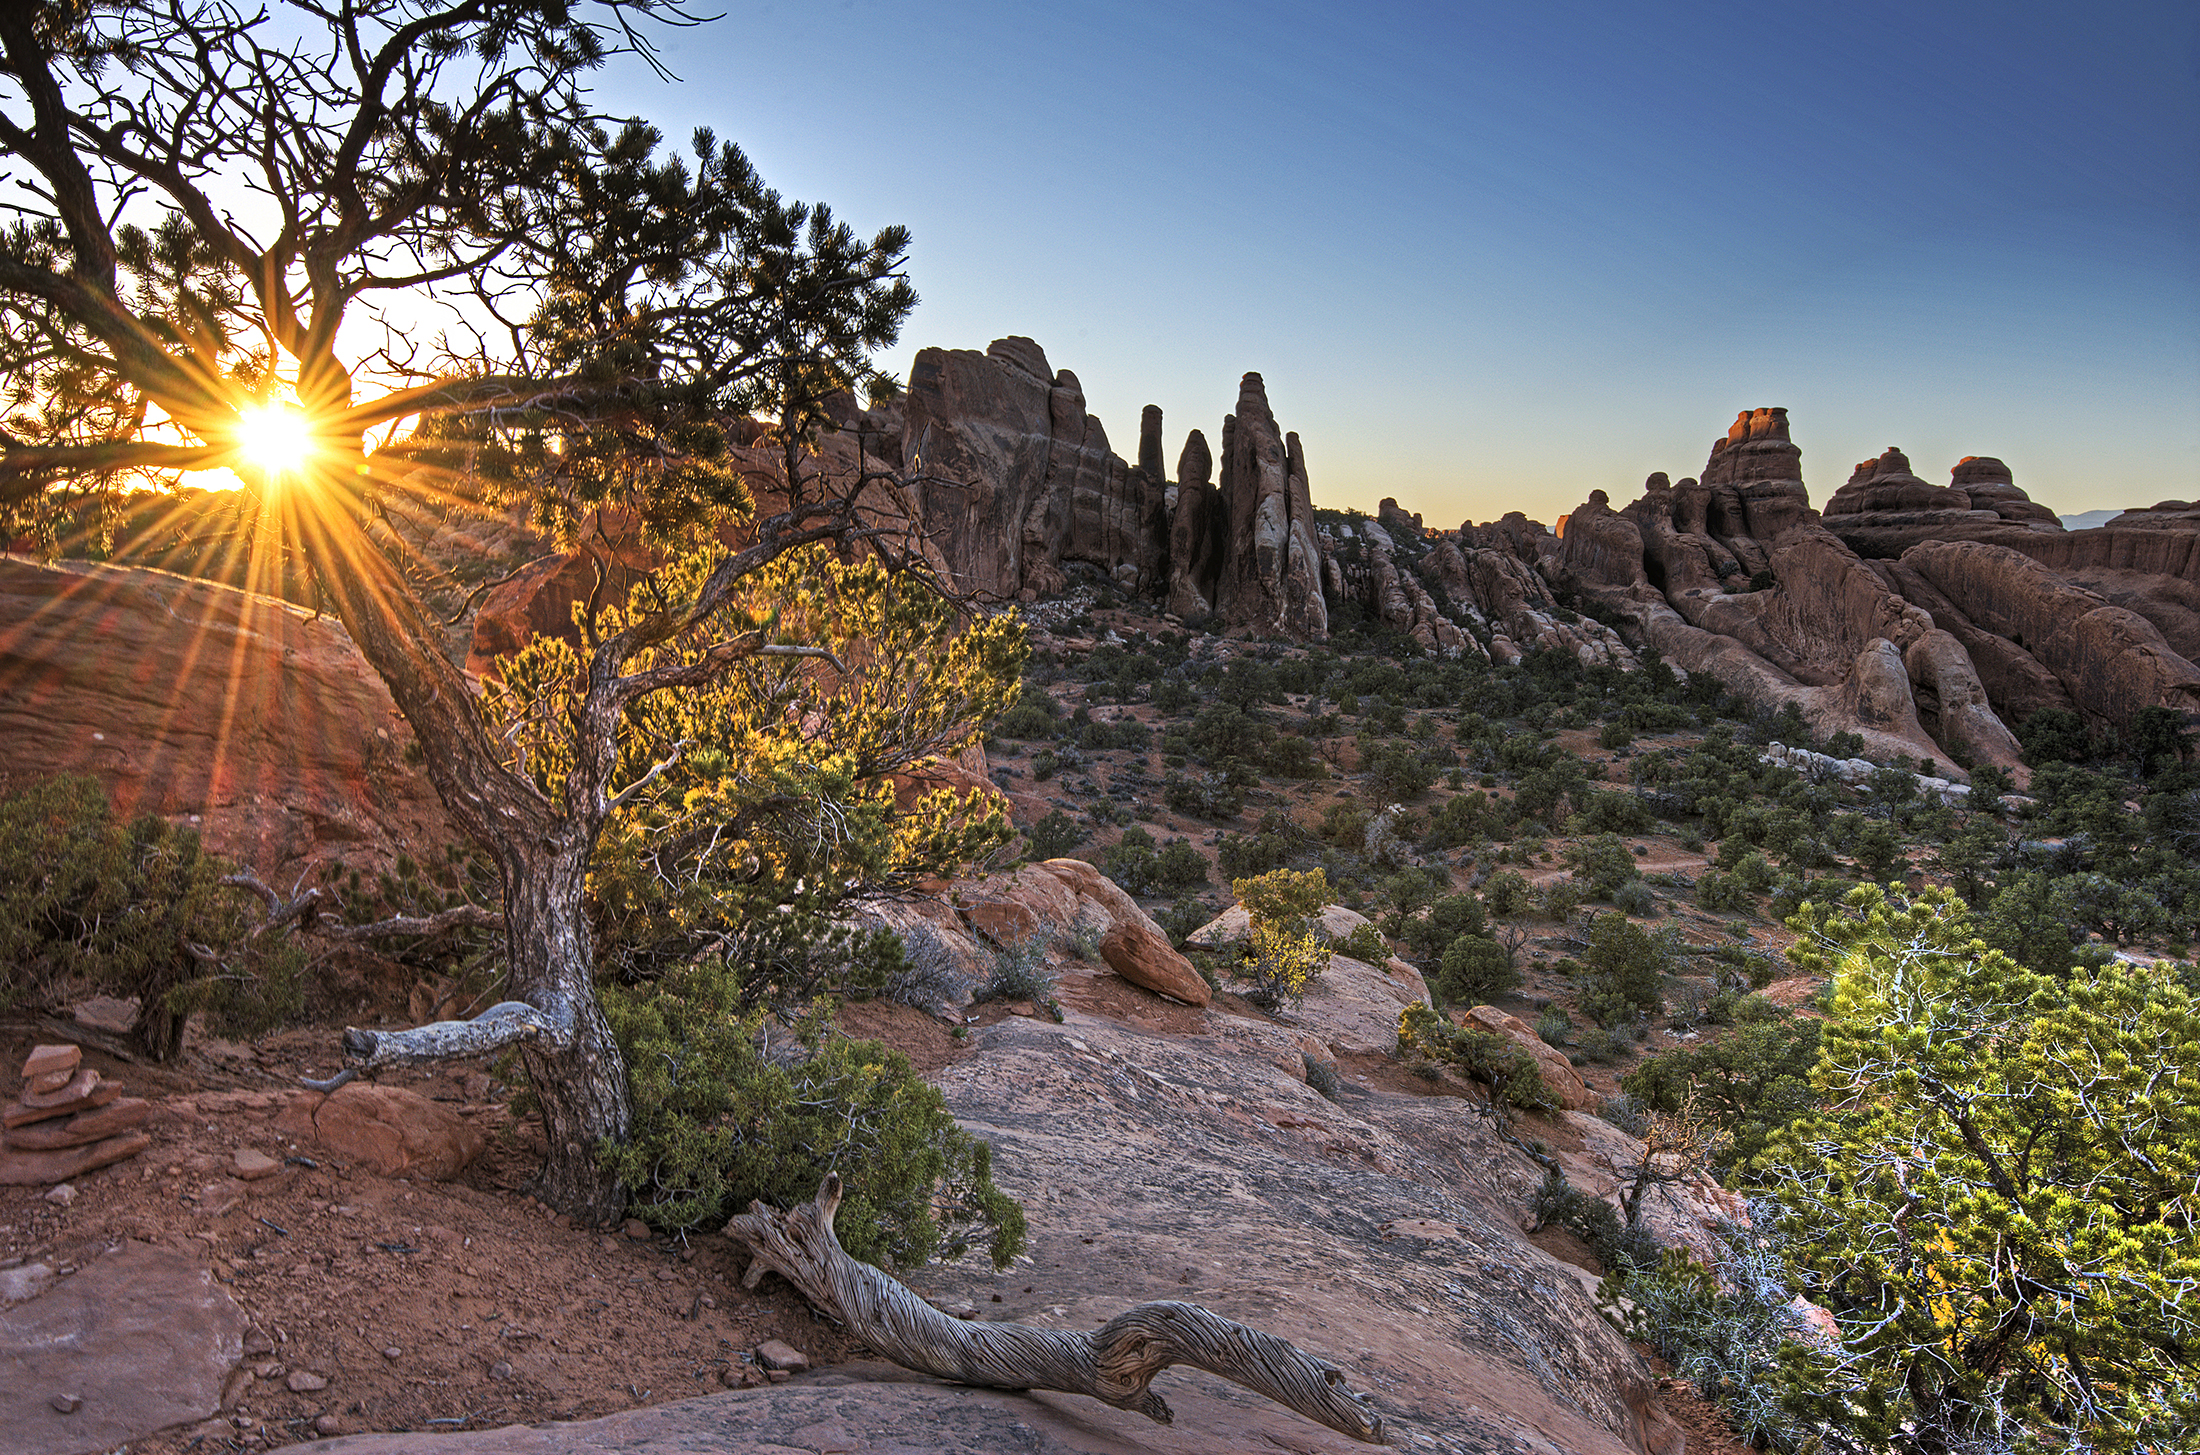 sunset devils garden utah arches national park thisworldexists this world exists kyle jenkins